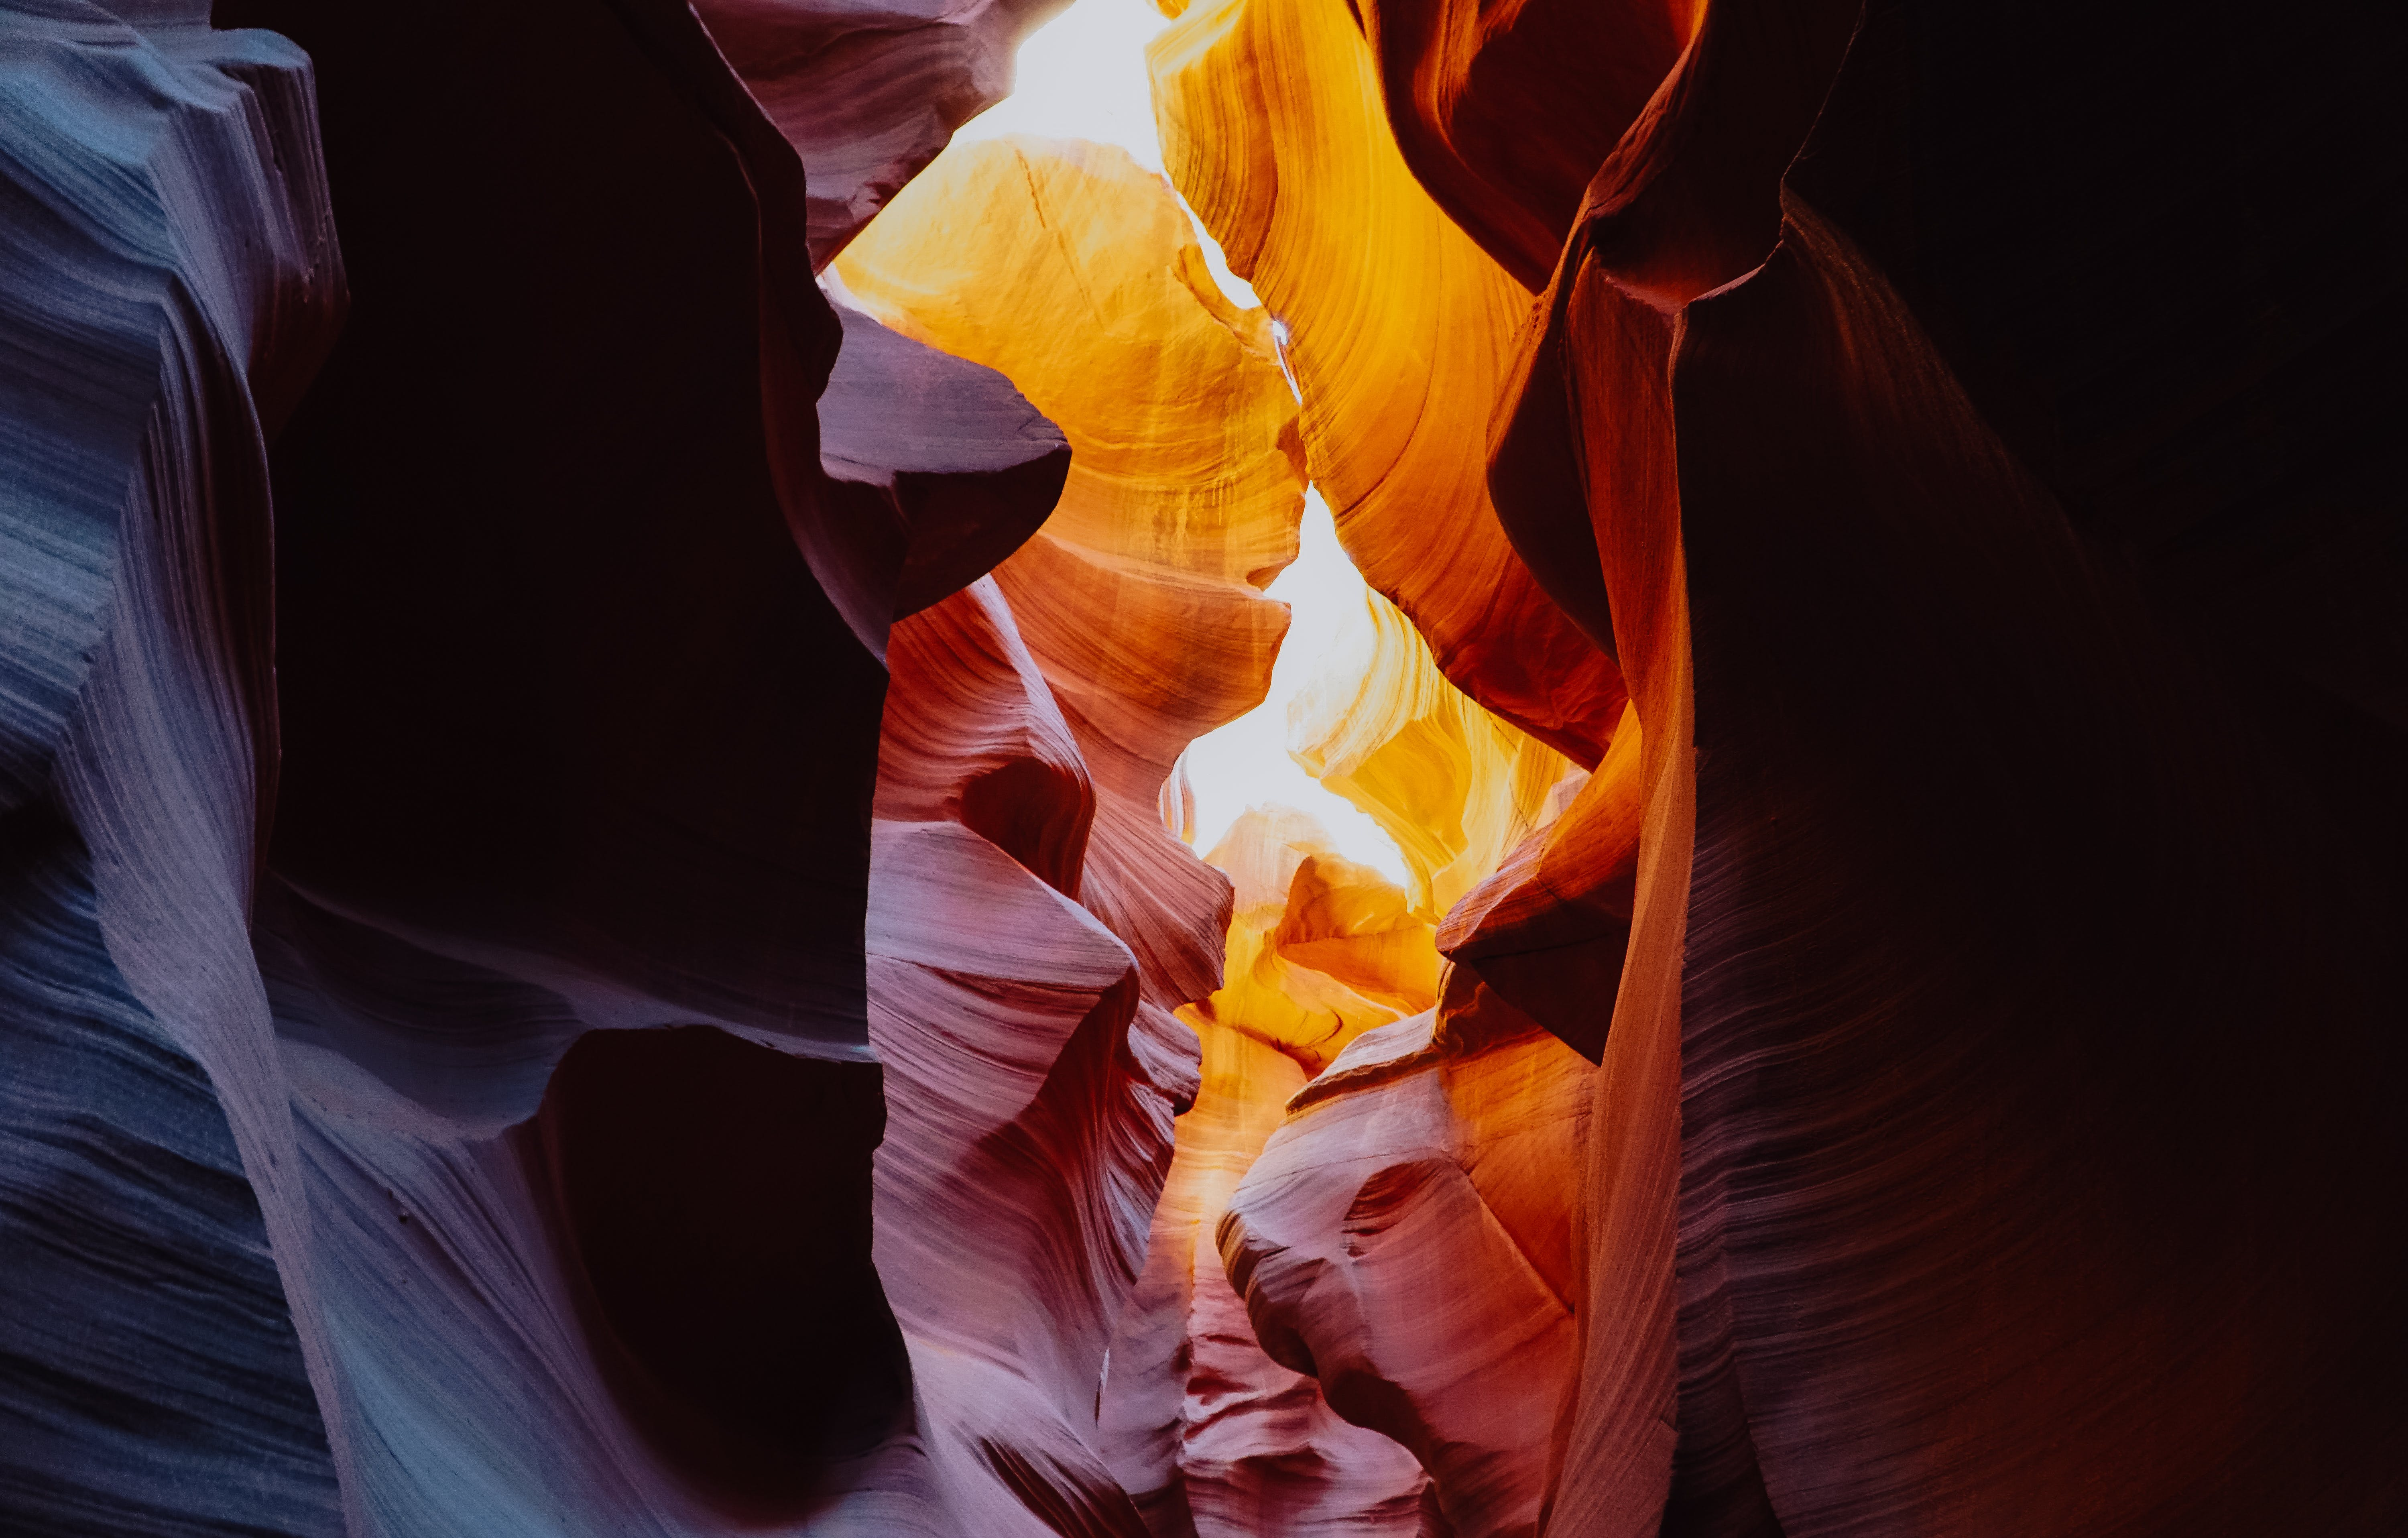 of colors, daylight, outdoors, rock formation